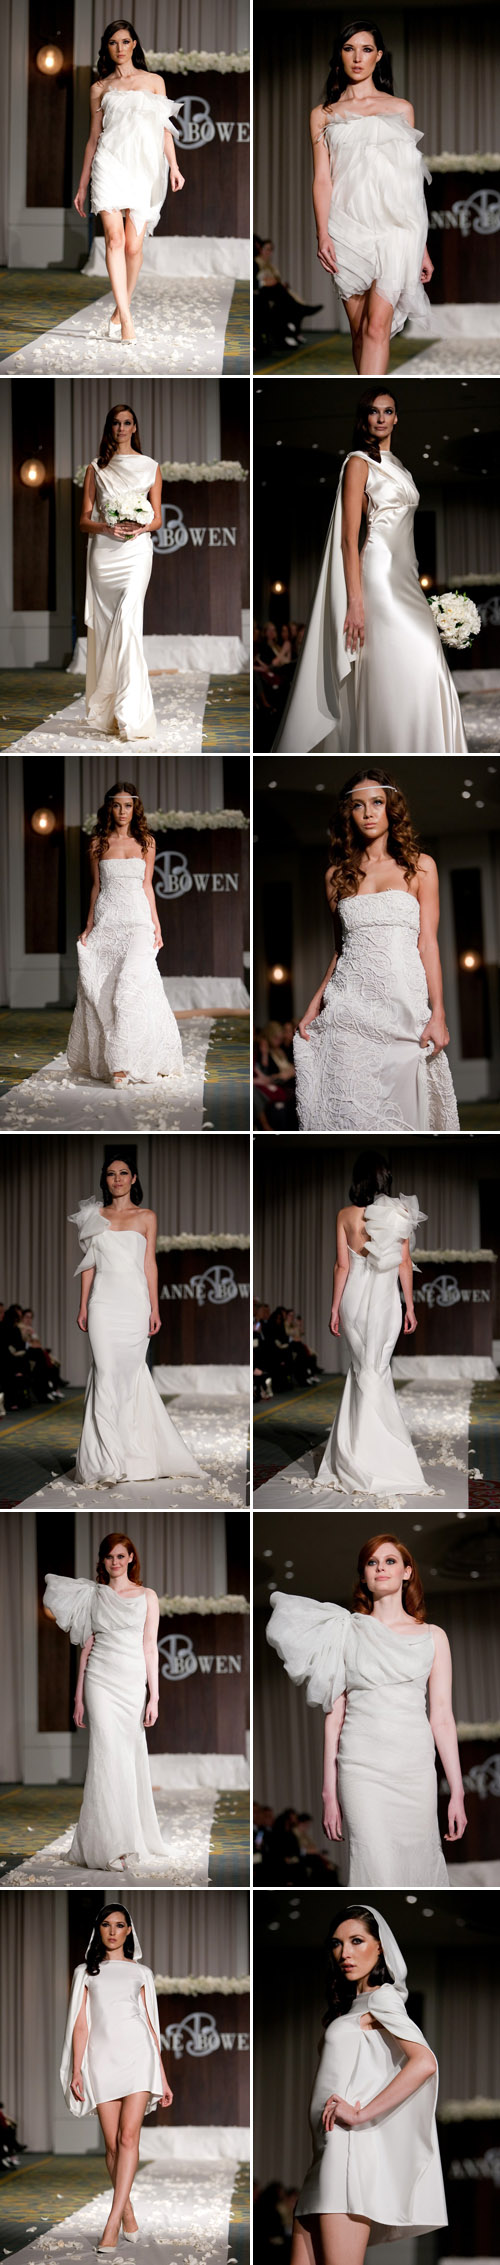 Anne Bowen Spring 2011 wedding dress colleciton from NY Bridal Market, photos by John and Joseph Photography